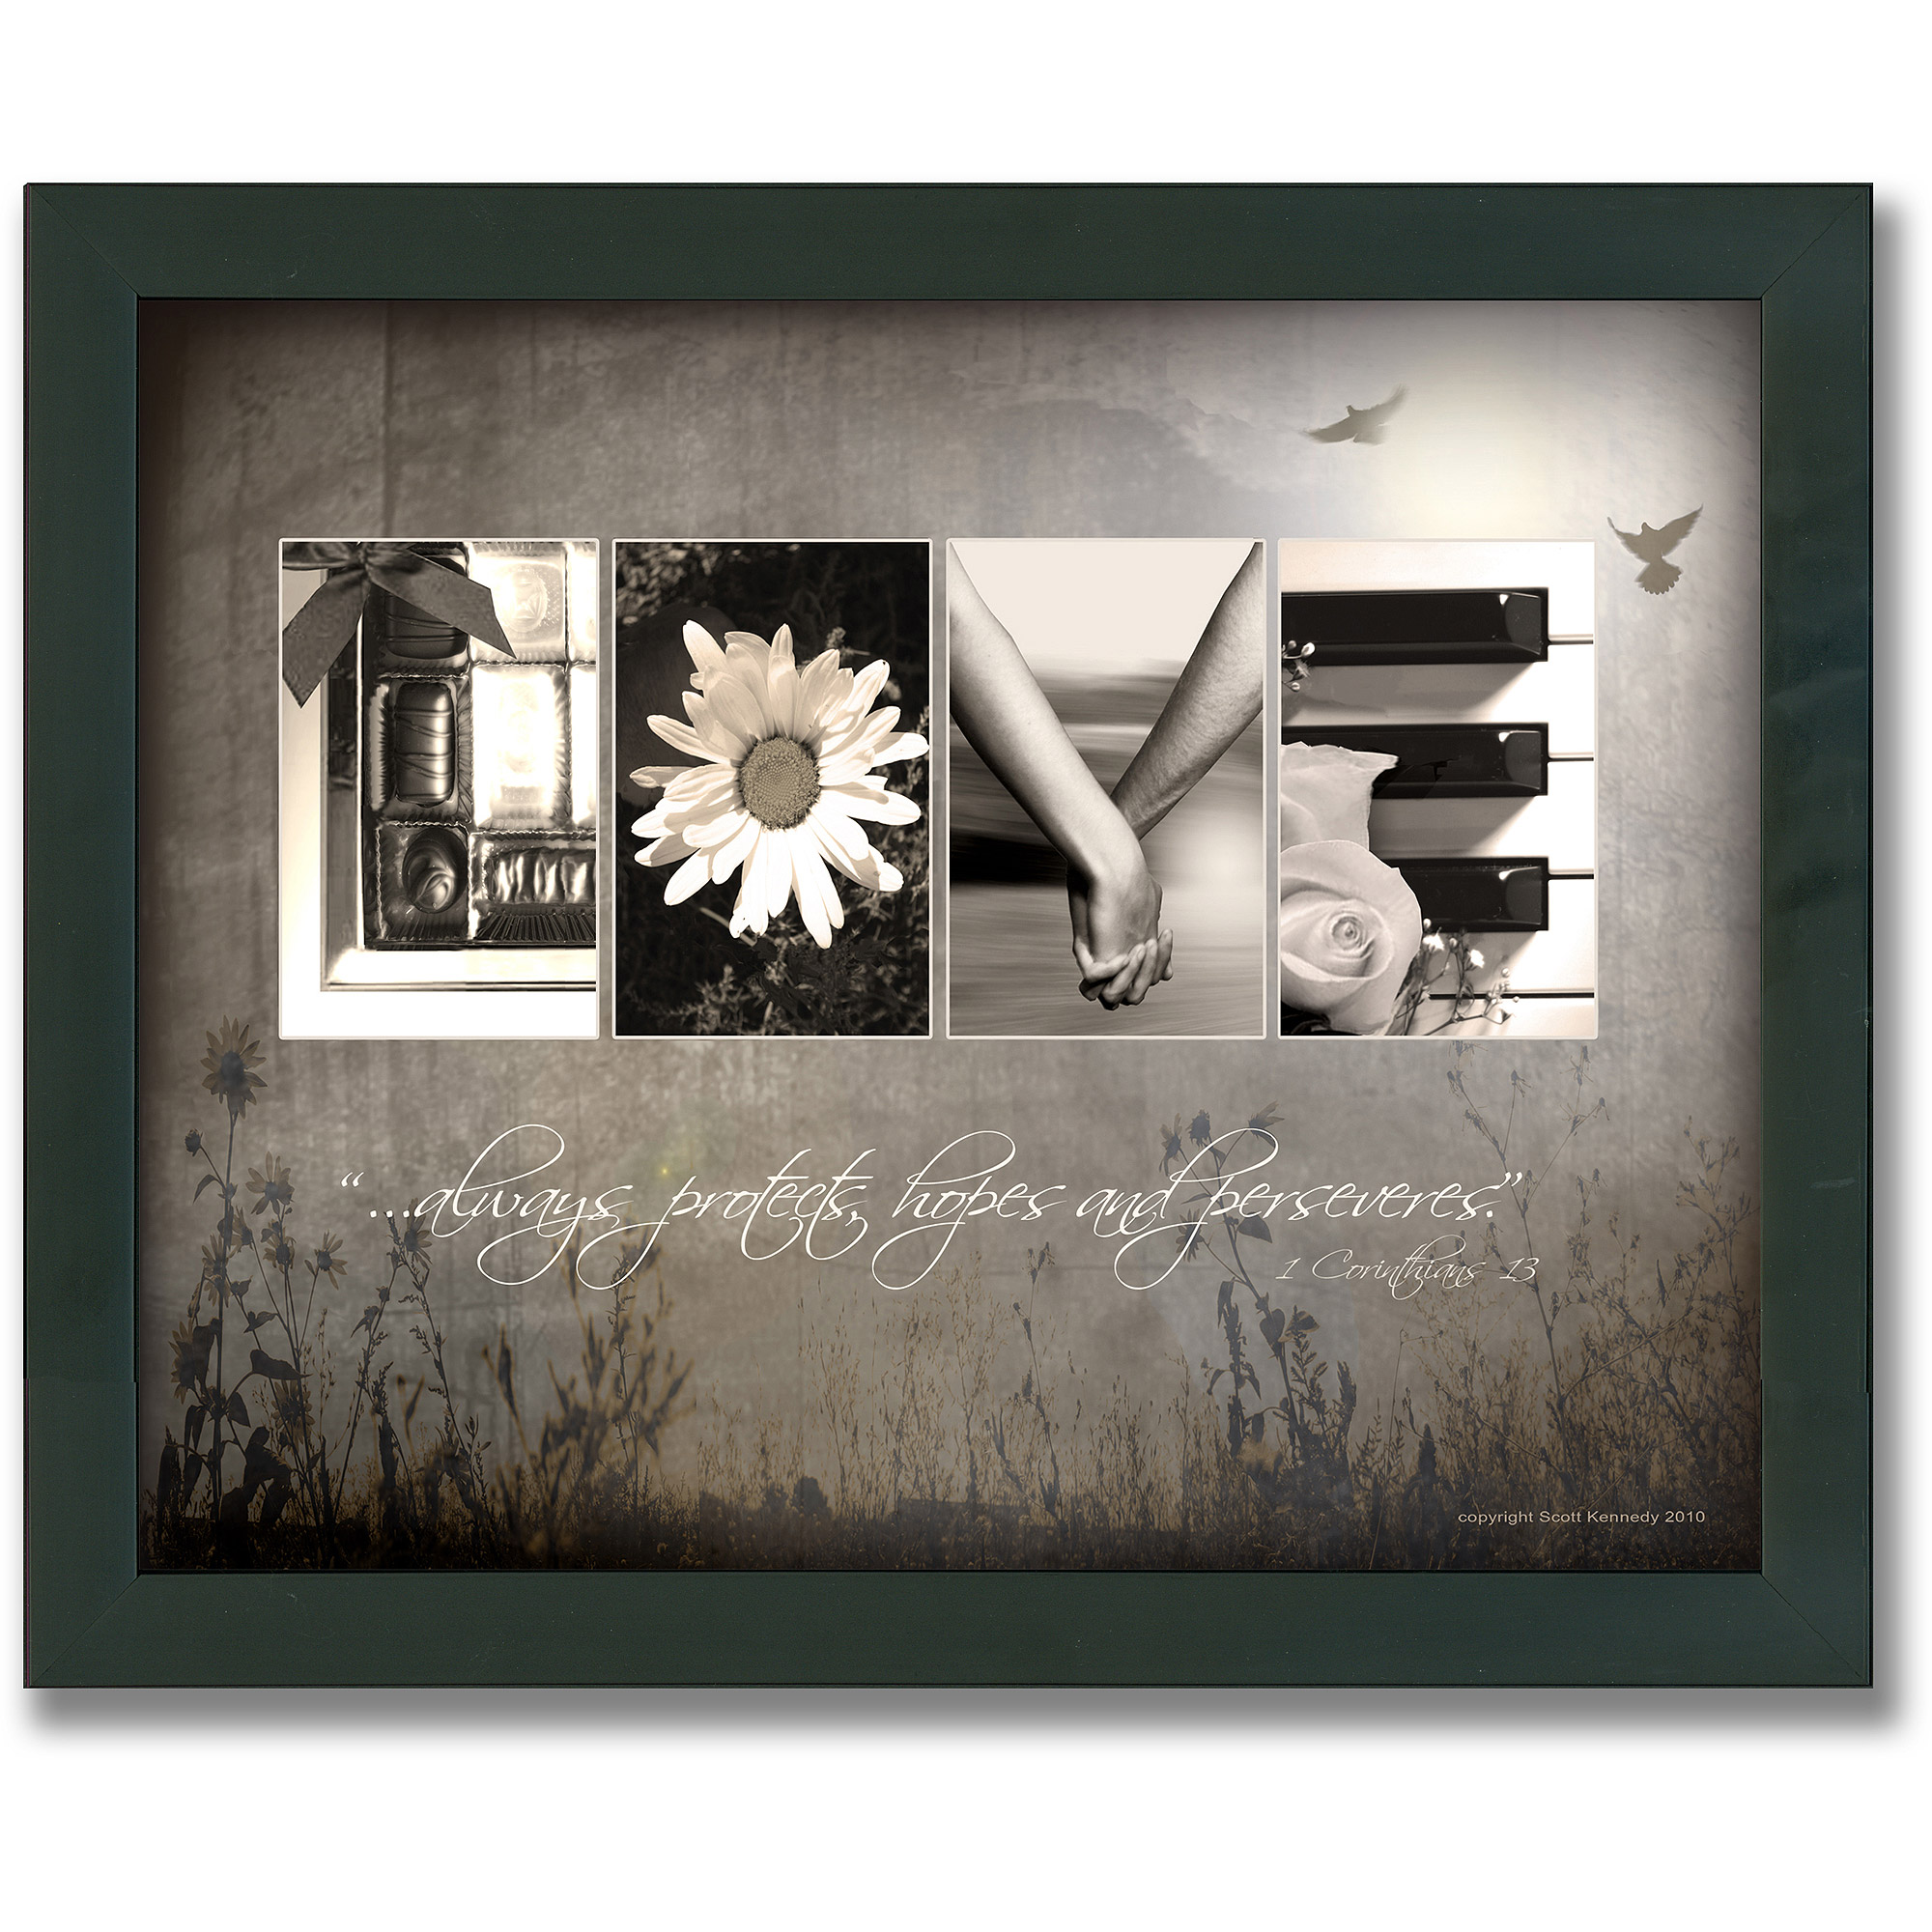 personal-prints love letters framed canvas wall art - walmart.com